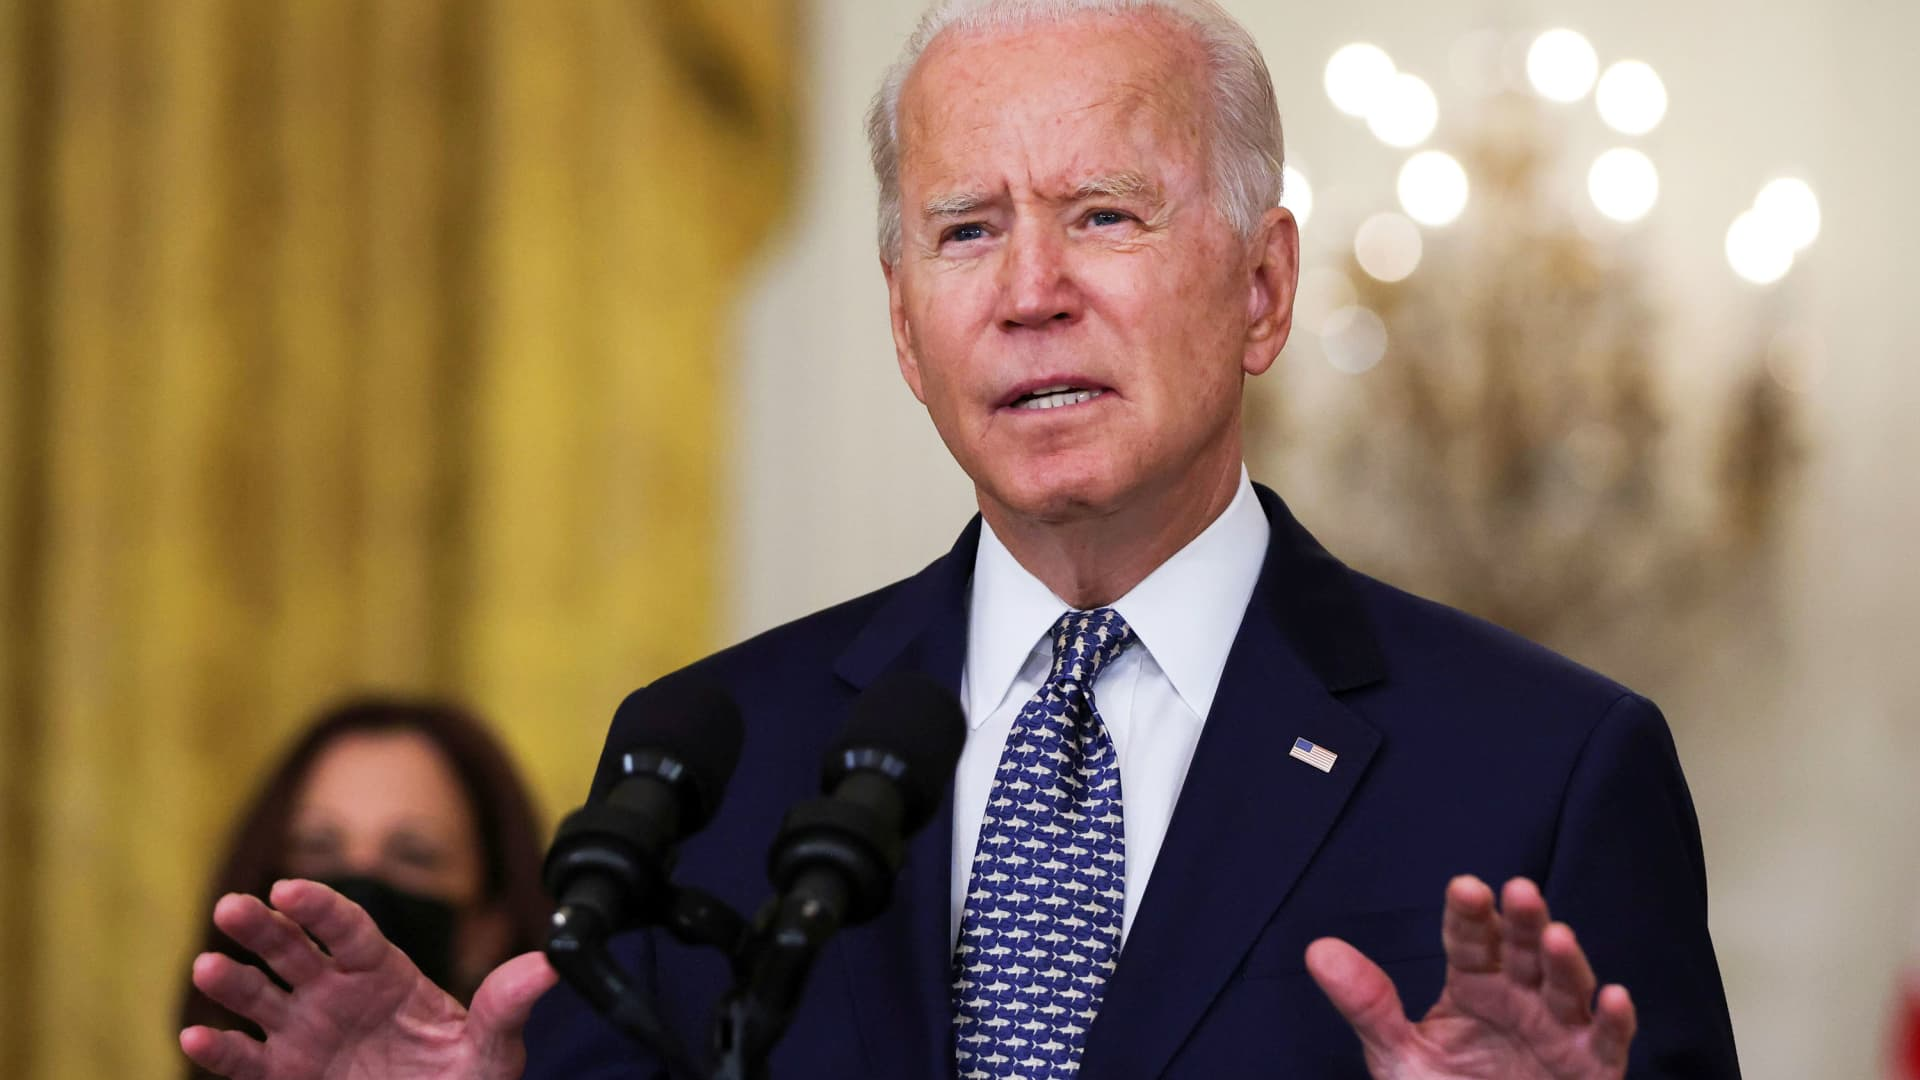 U.S. President Joe Biden discusses the U.S. Senate's passage of the $1 trillion bipartisan infrastructure bill, during a meeting in the State Dining Room at the White House in Washington, August 10, 2021.